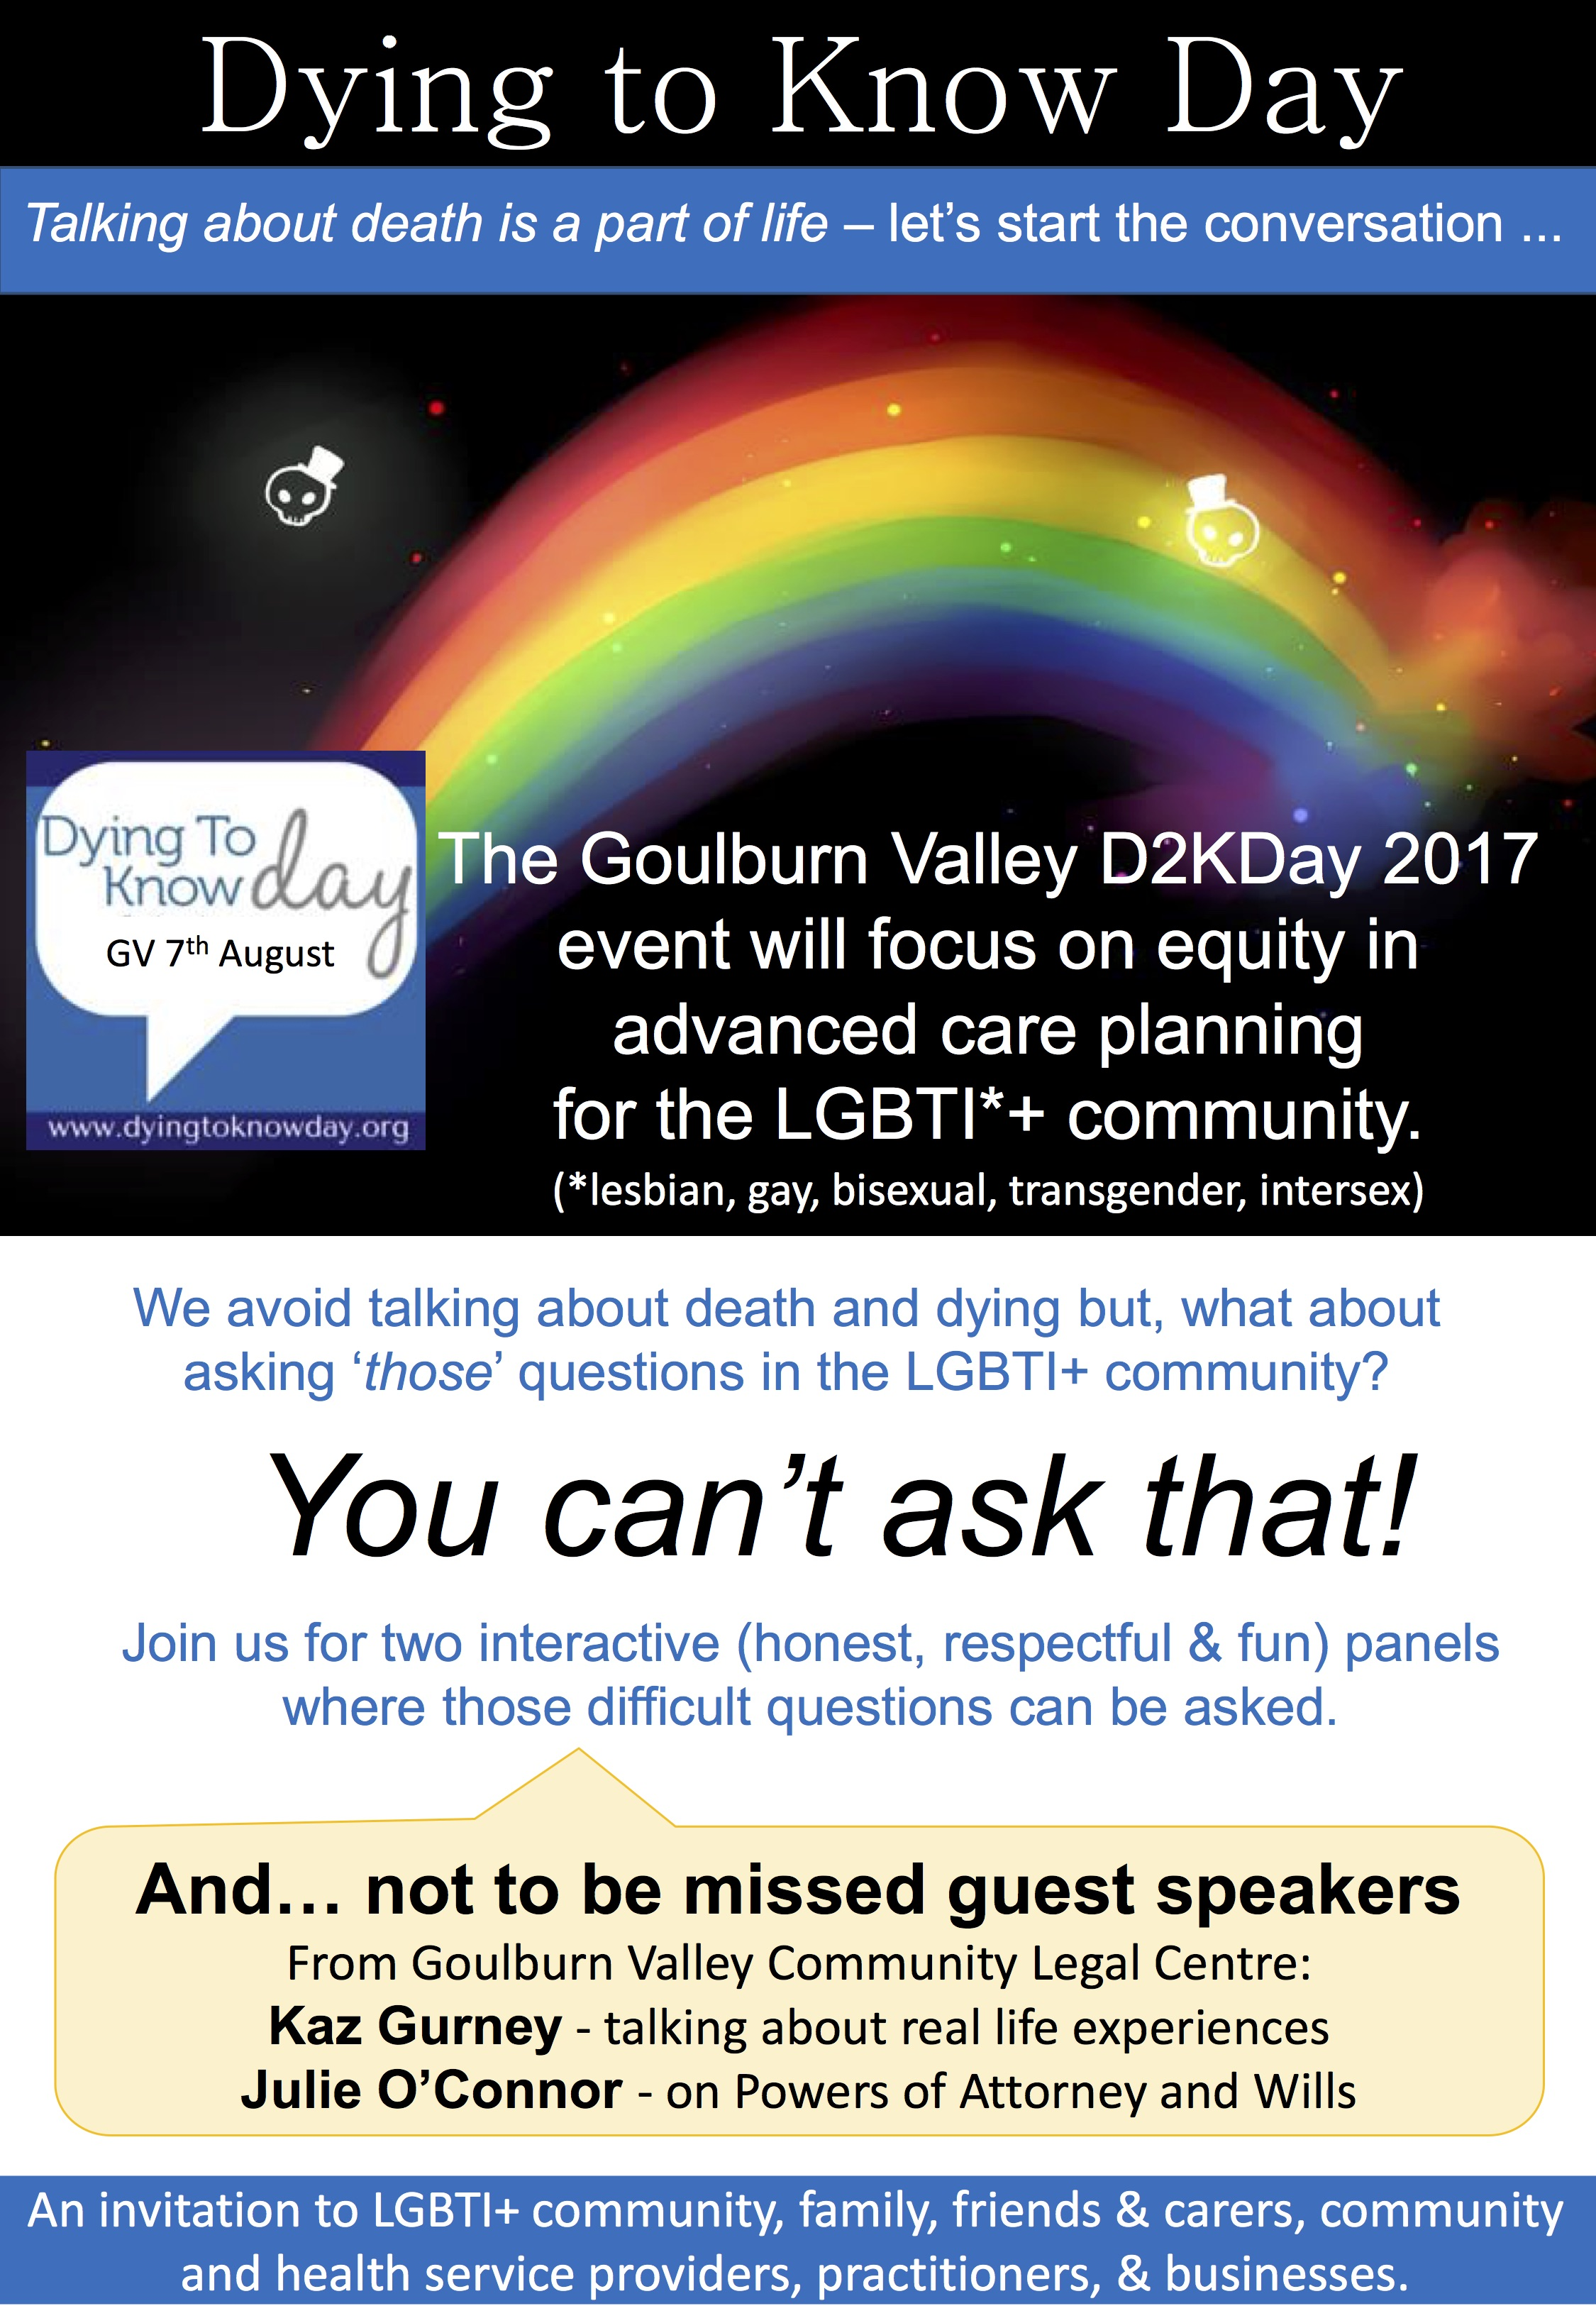 LGBTI Health Equity D2KDay Event Flyer 20172.jpg